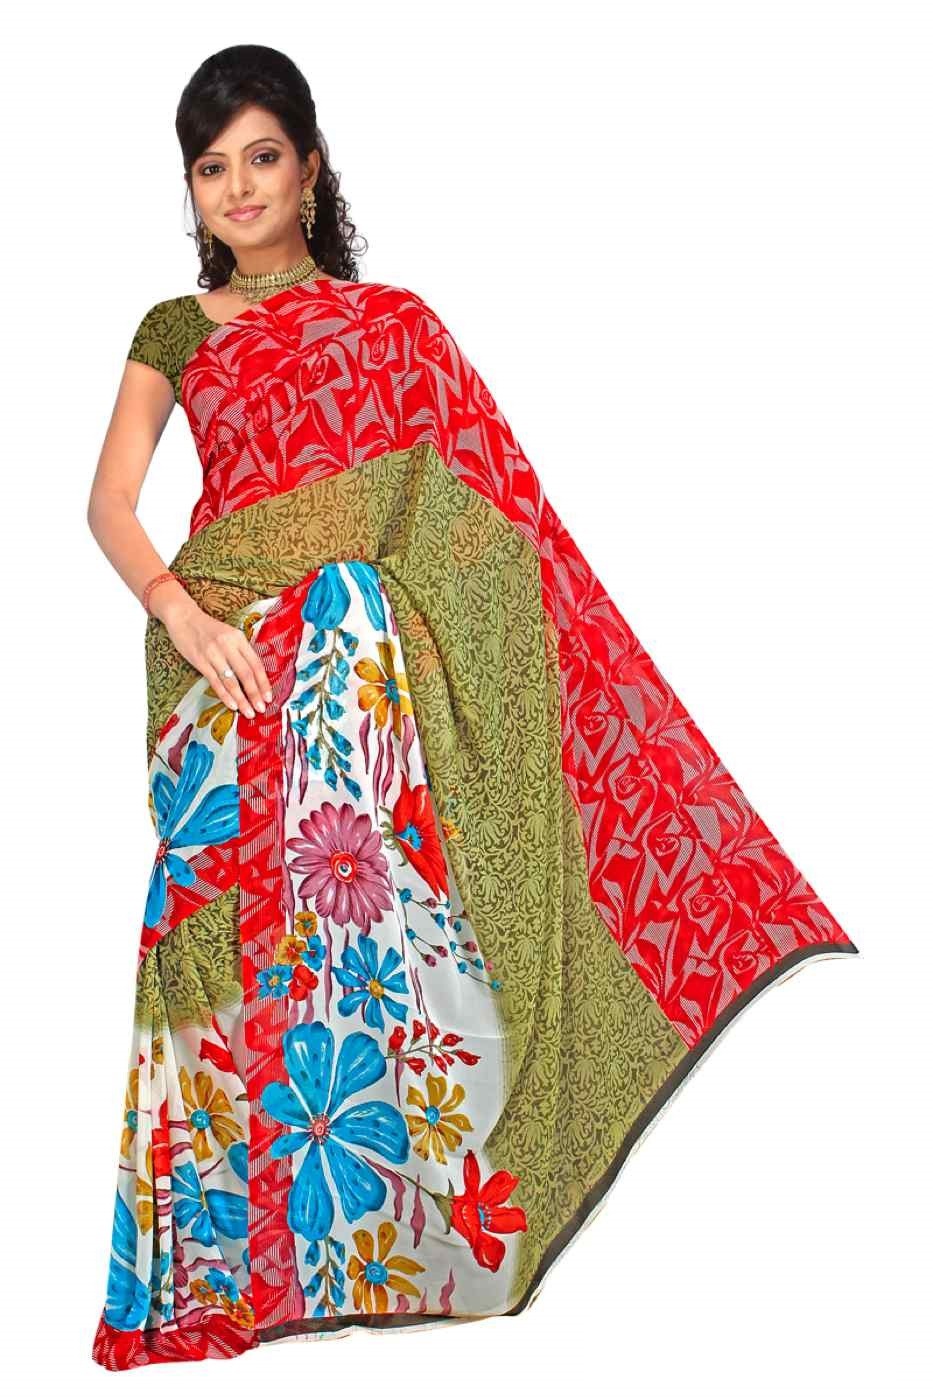 Indian Selections Bhavini Georgette Printed Casual Saree Sari Bellydance fabric at Sears.com